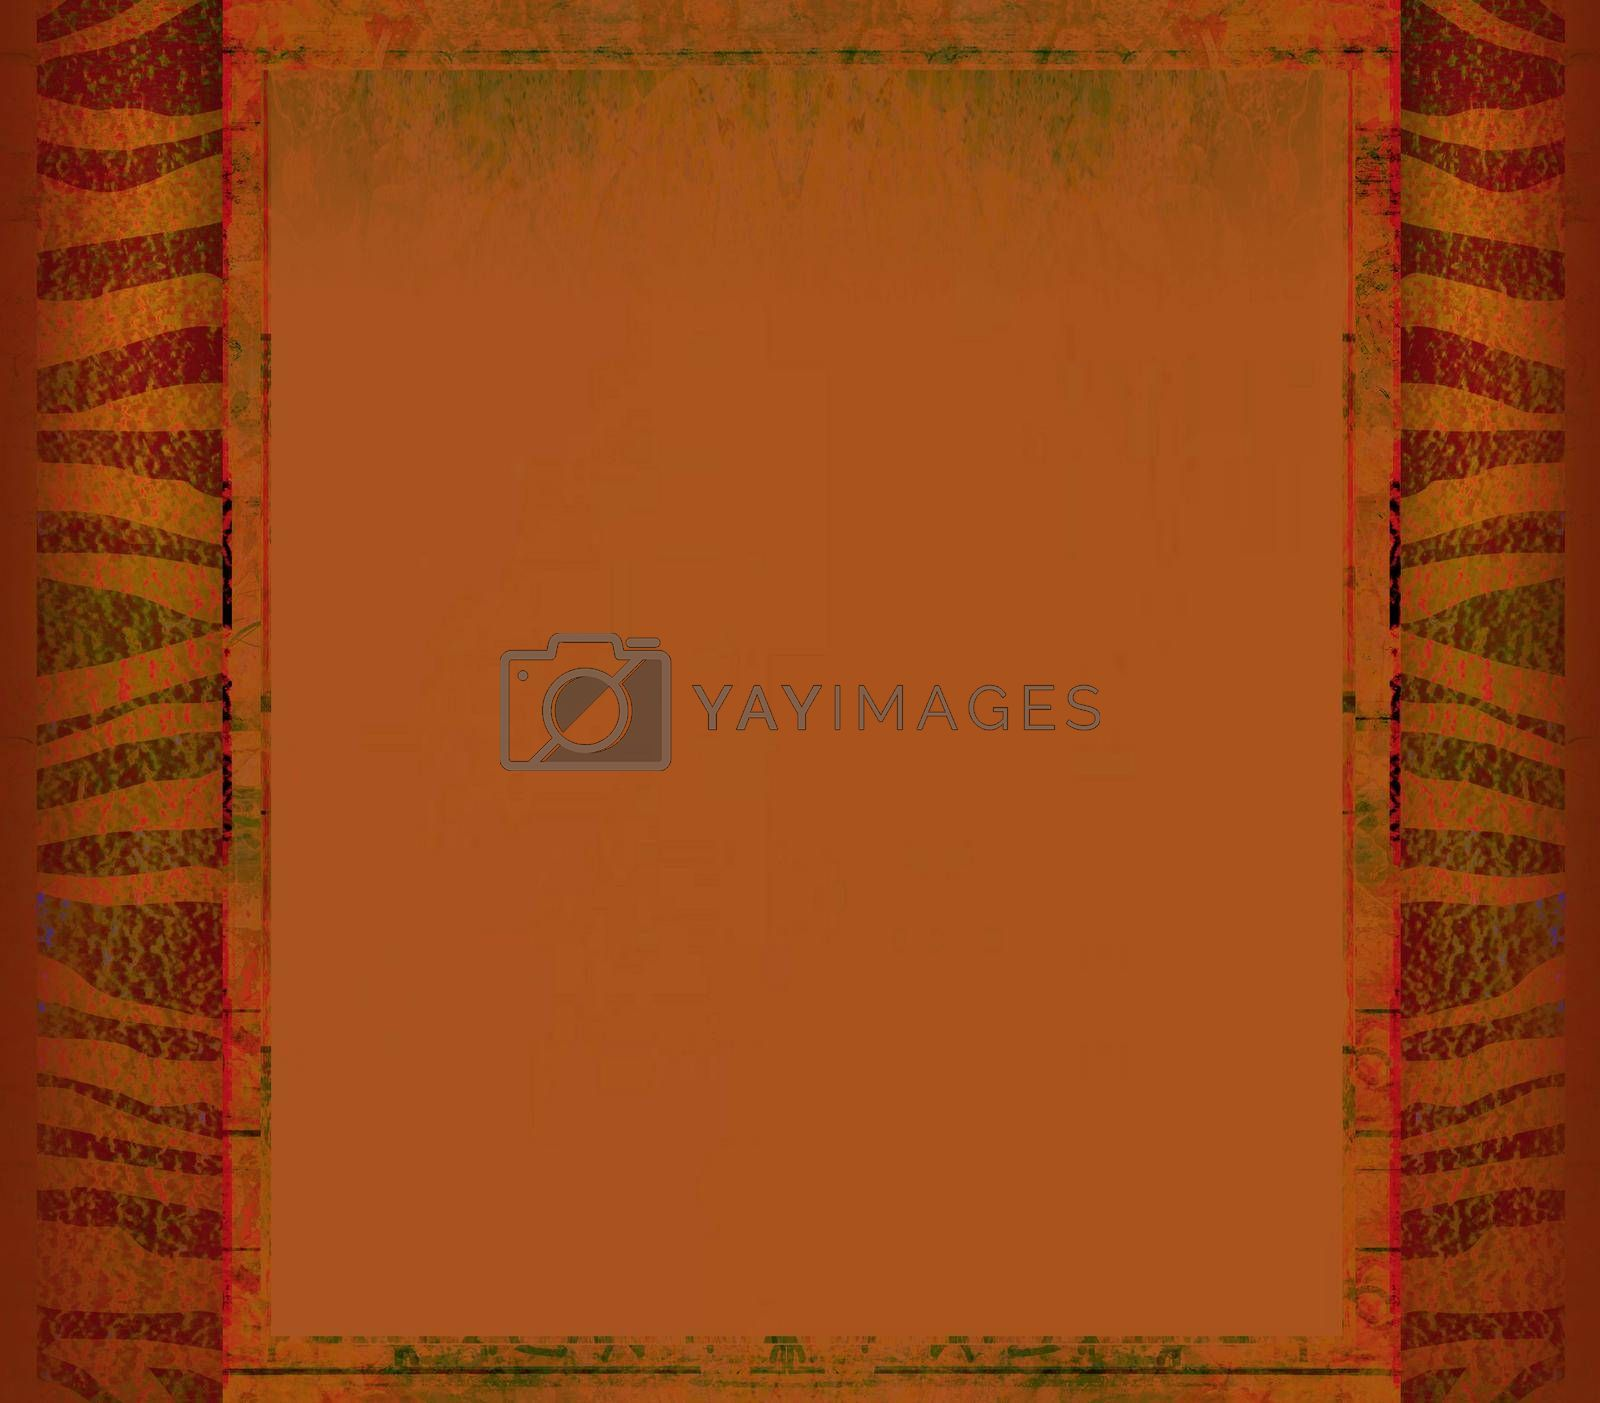 Royalty free image of Grunge frame - african traditional patterns by JackyBrown